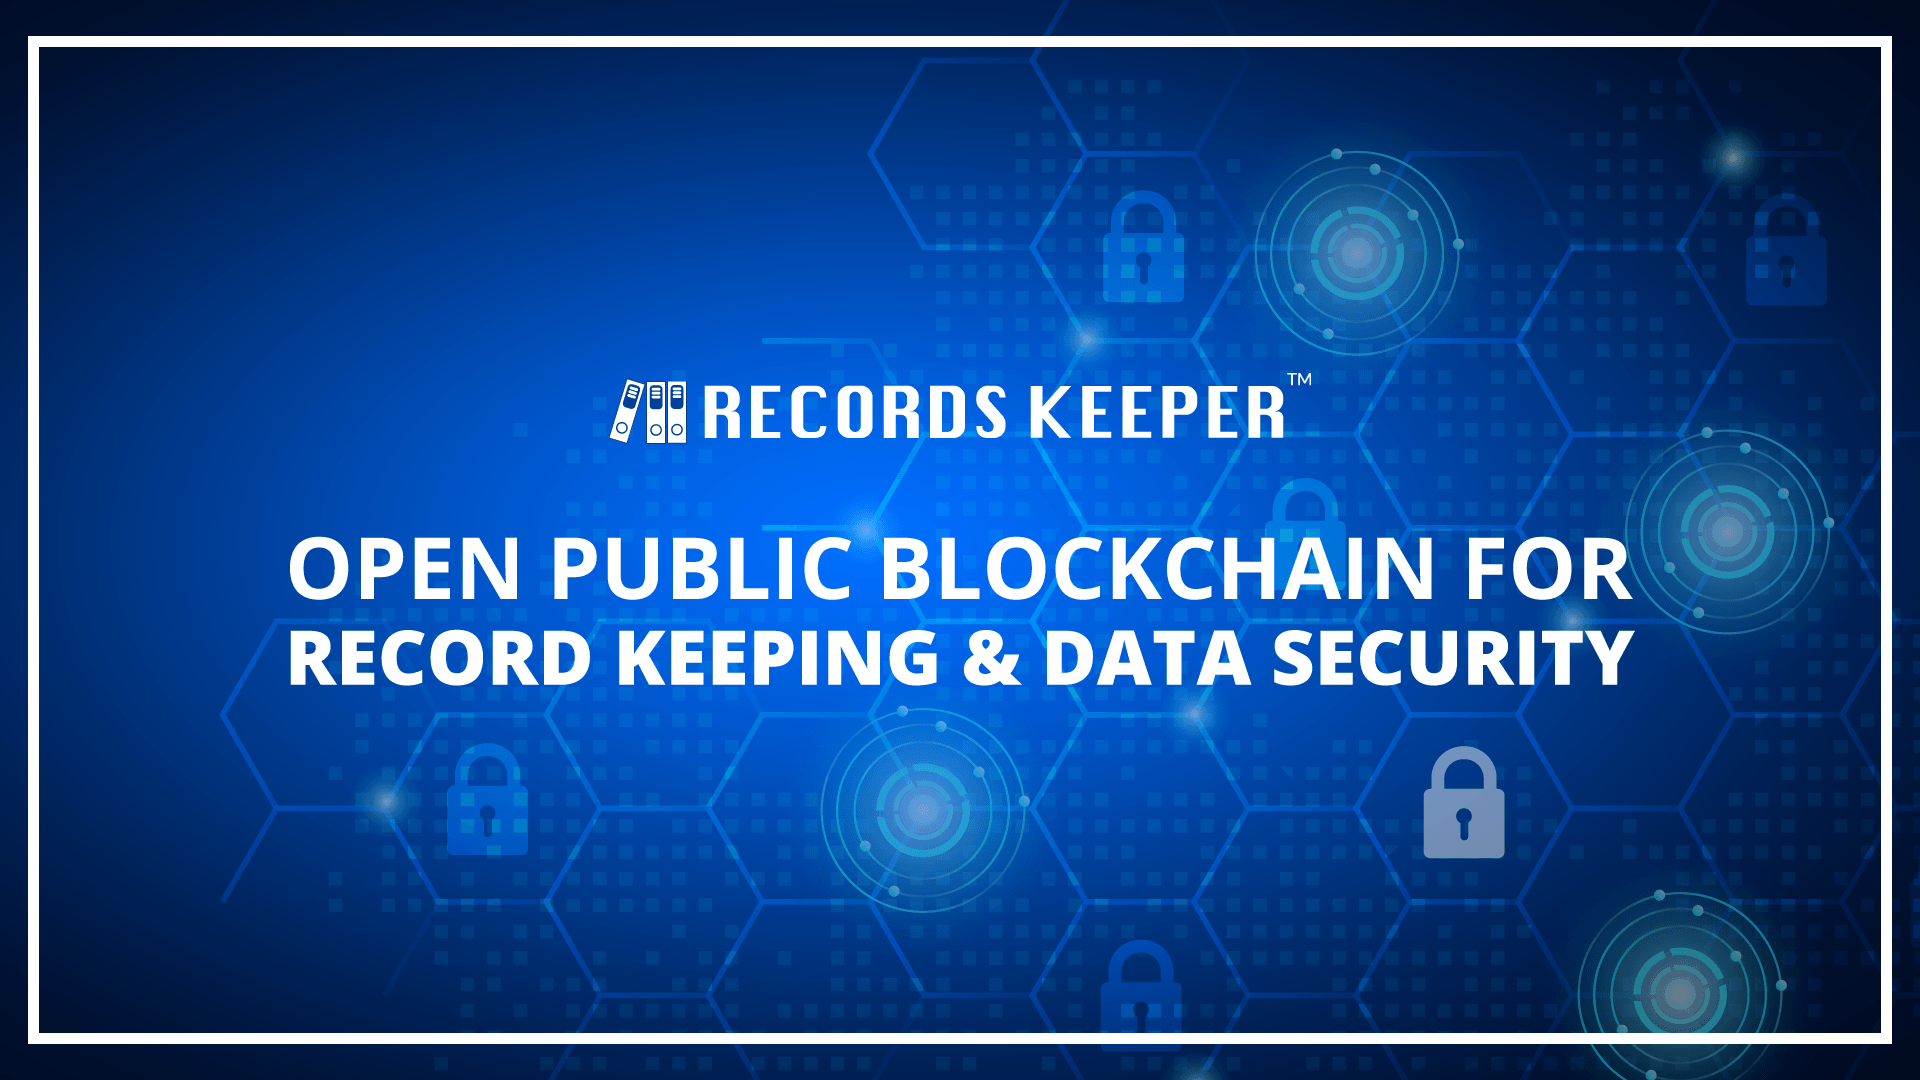 Press Release: RecordsKeeper – An Open Public Ecosystem for Record Keeping & Data Security